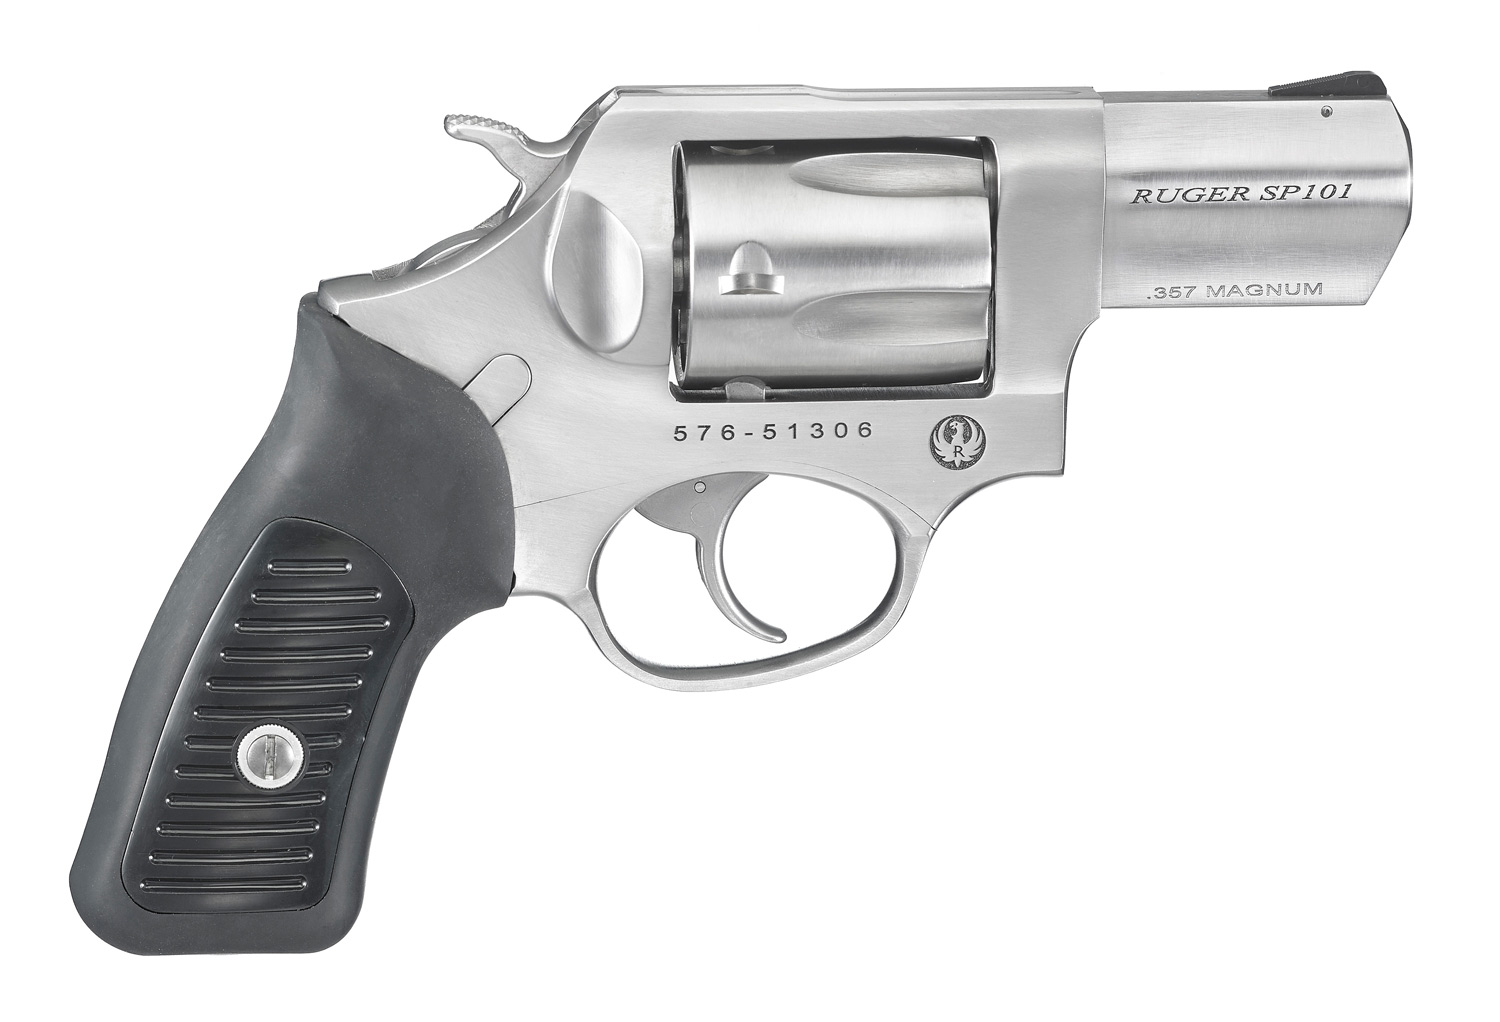 Meet Ruger's SP101 Compact Revolver: The Ideal Gun For